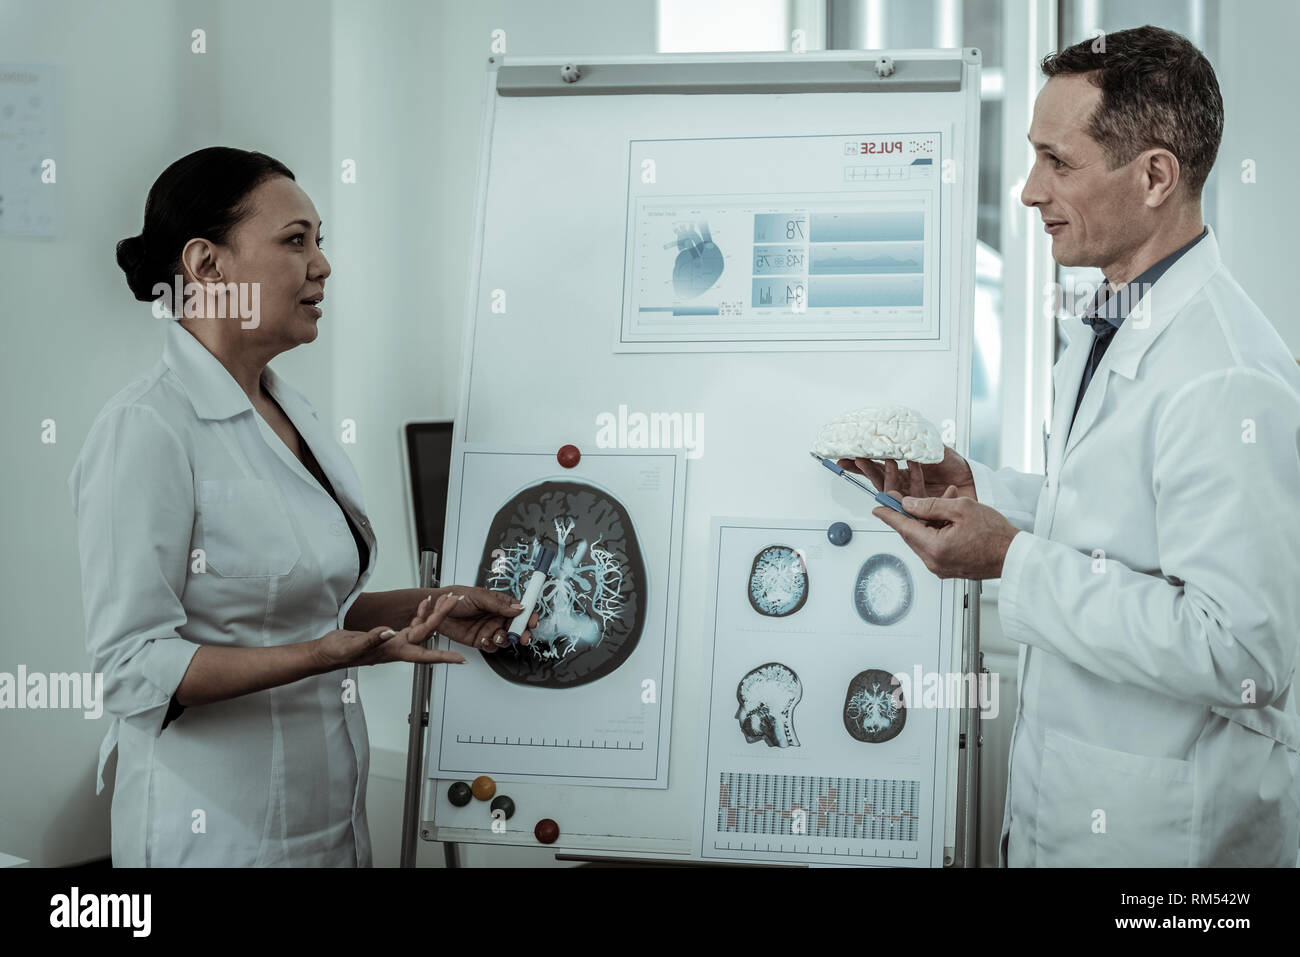 Both doctors analyzing situation with brain system - Stock Image